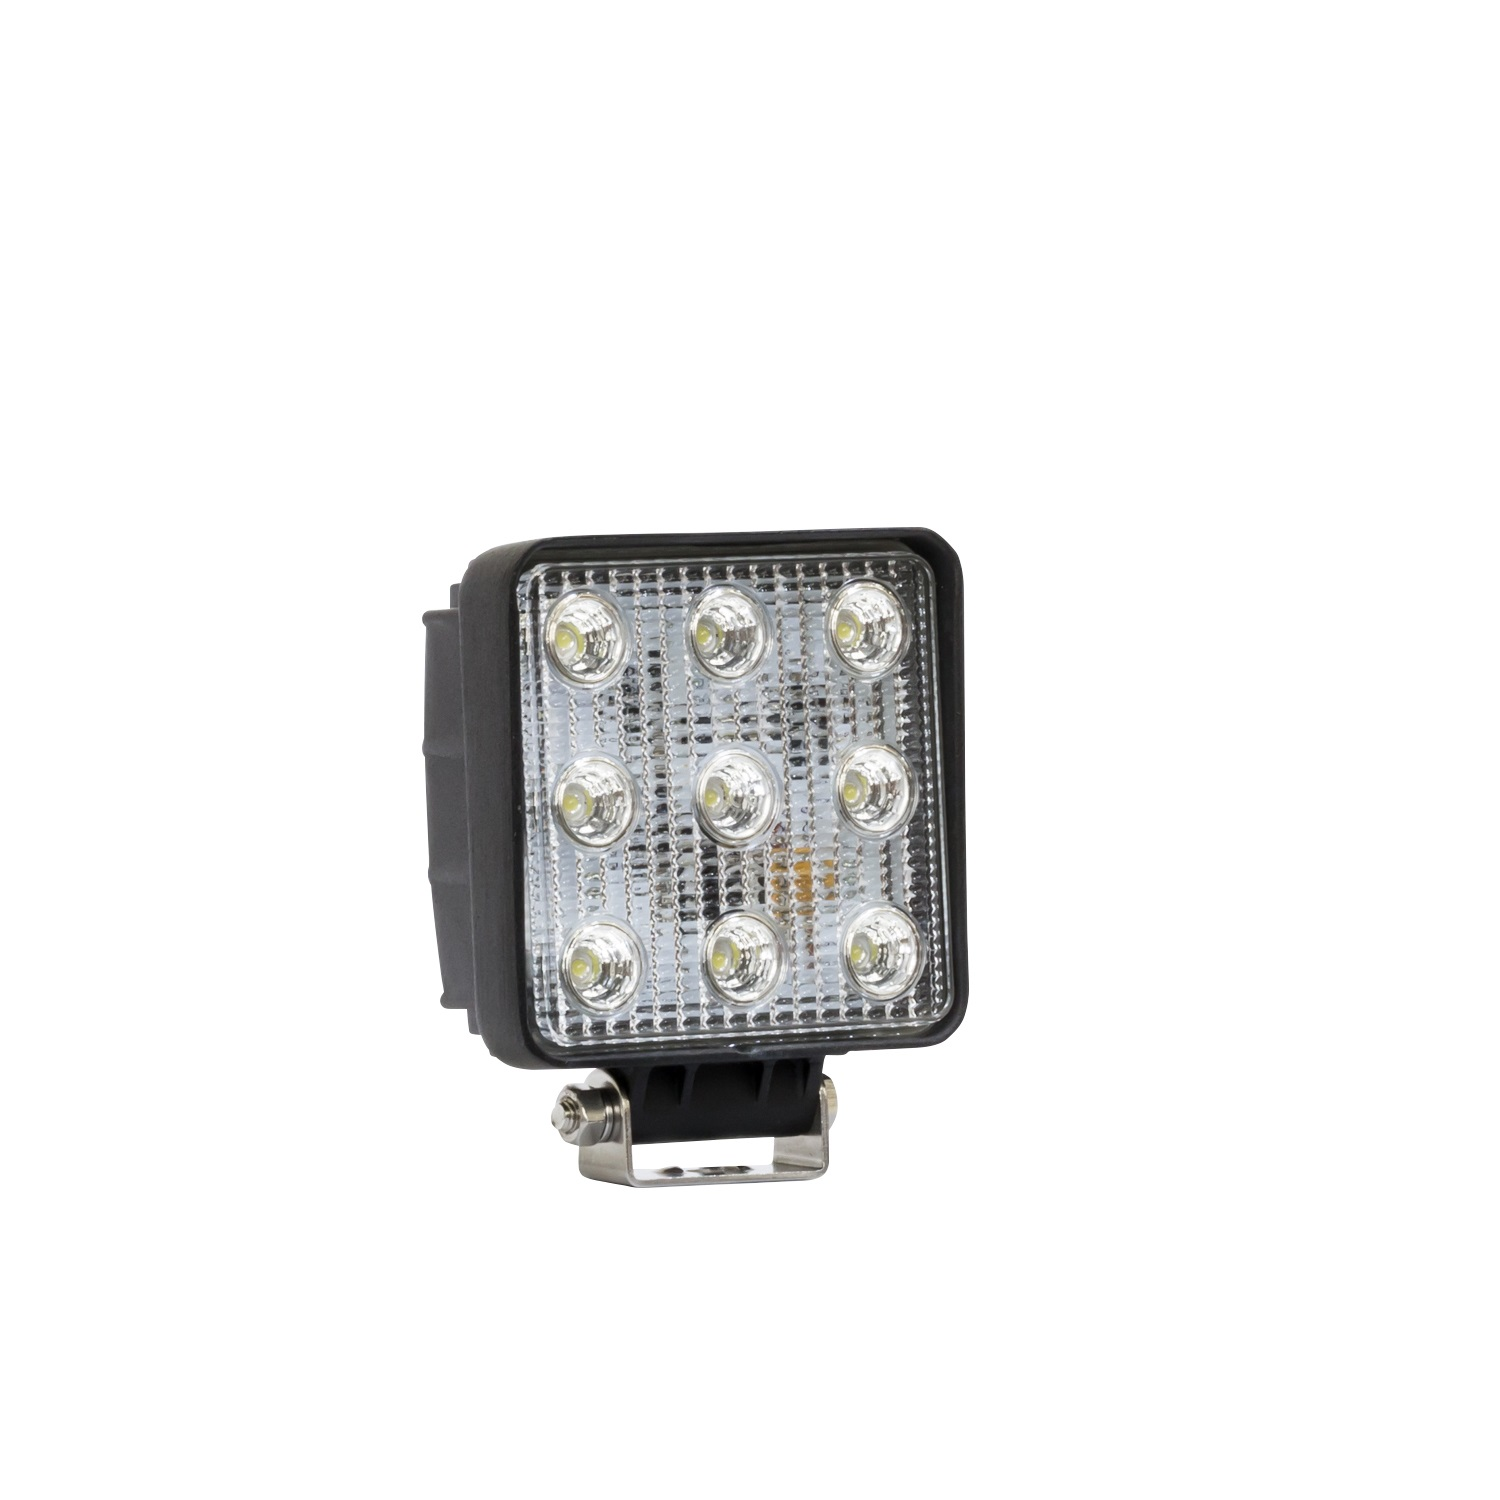 LED Work Light, 4.6 x 5.3 in., Square, Flood, Incl. Light/Mounting Hardware